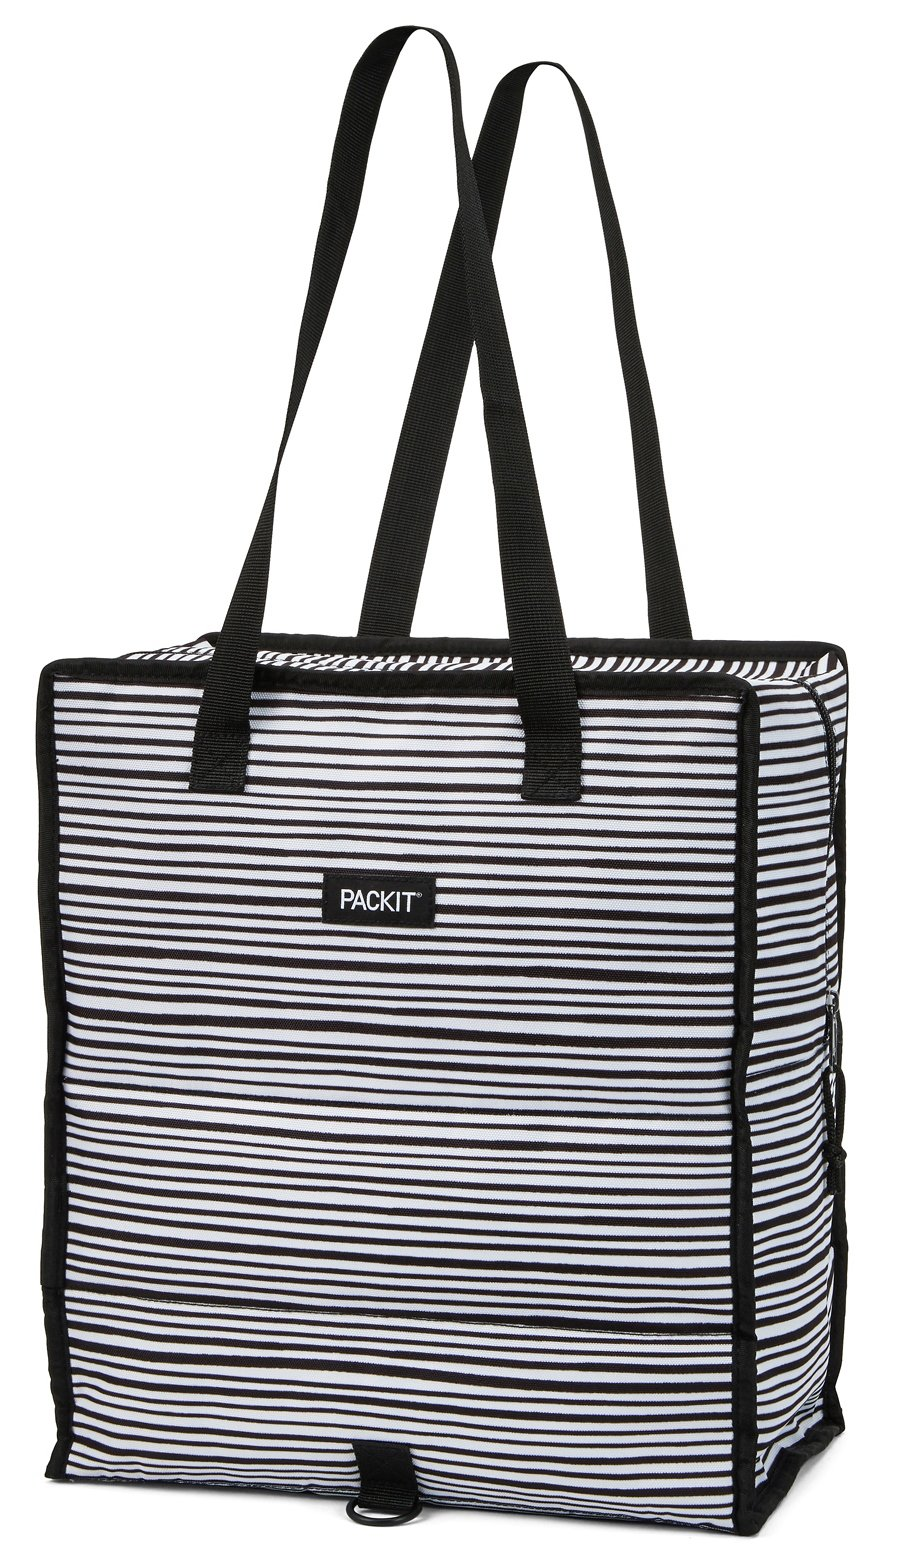 PackIt Freezable Grocery Shopping Bag with Zip Closure, Wobbly Stripes by PackIt (Image #1)